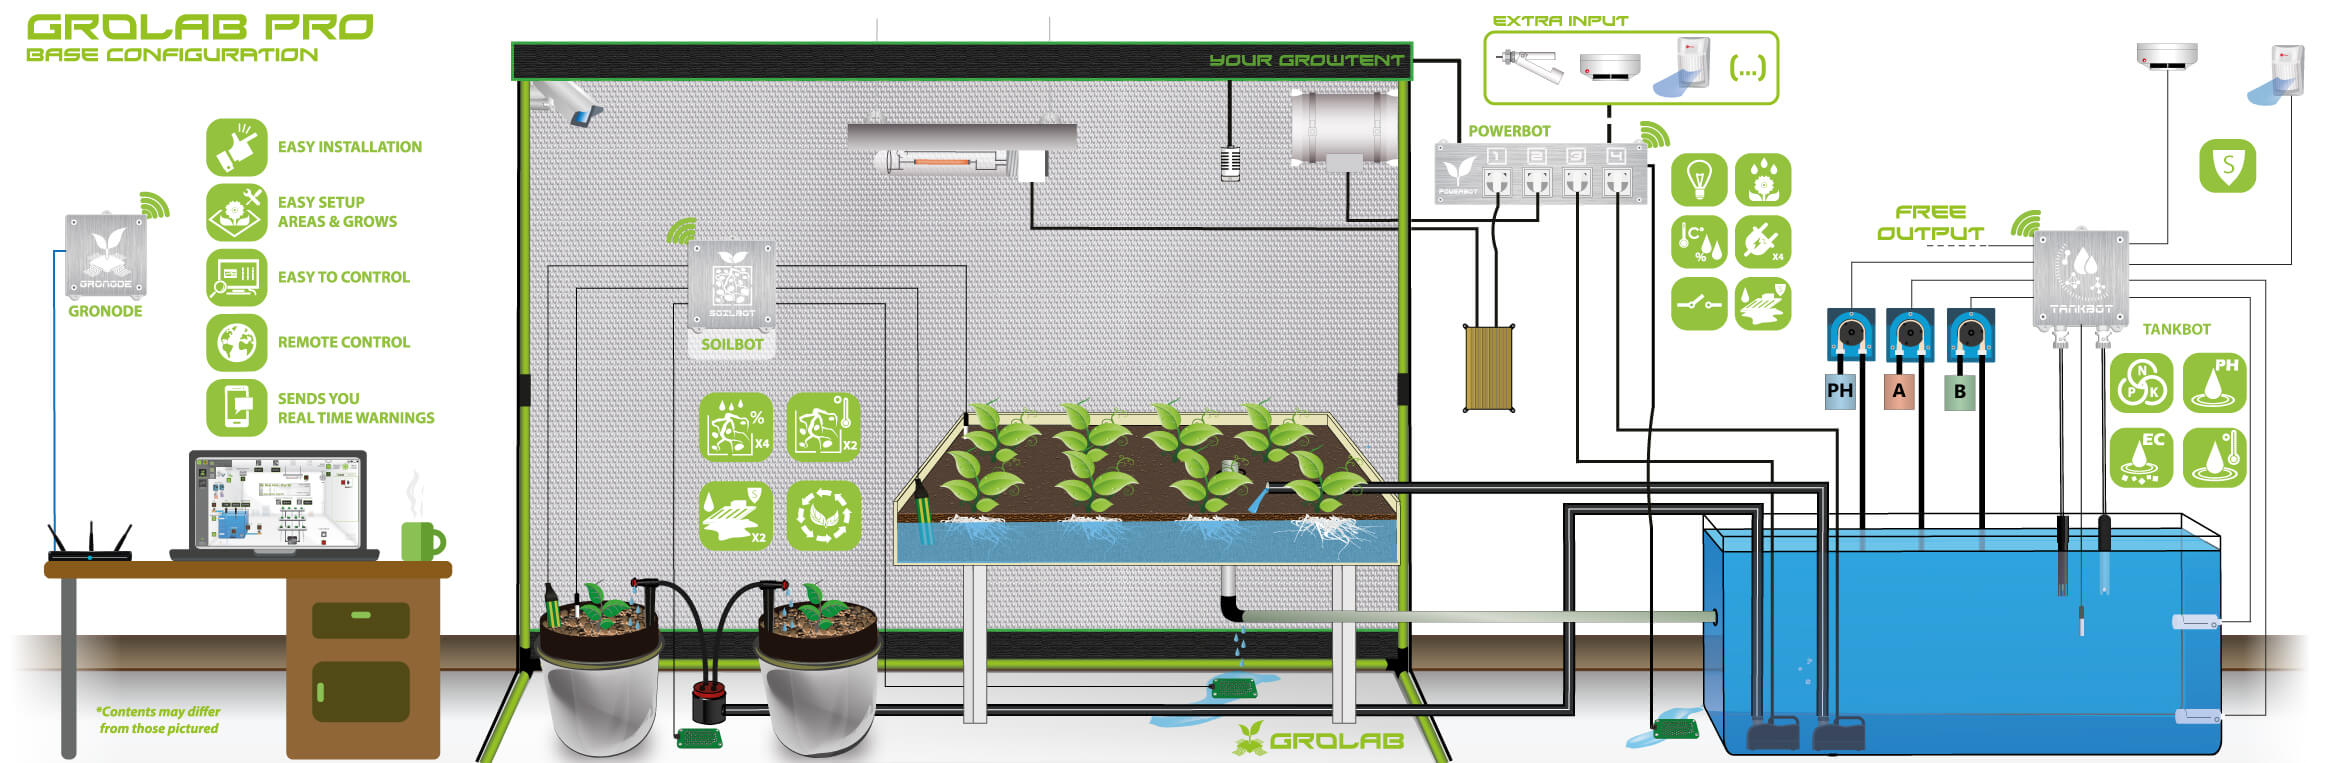 GroLab Soil Kit Base Configuration, with PowerBot controlling light, irrigation and ventilation and SoilBot moisture, temperature and flood